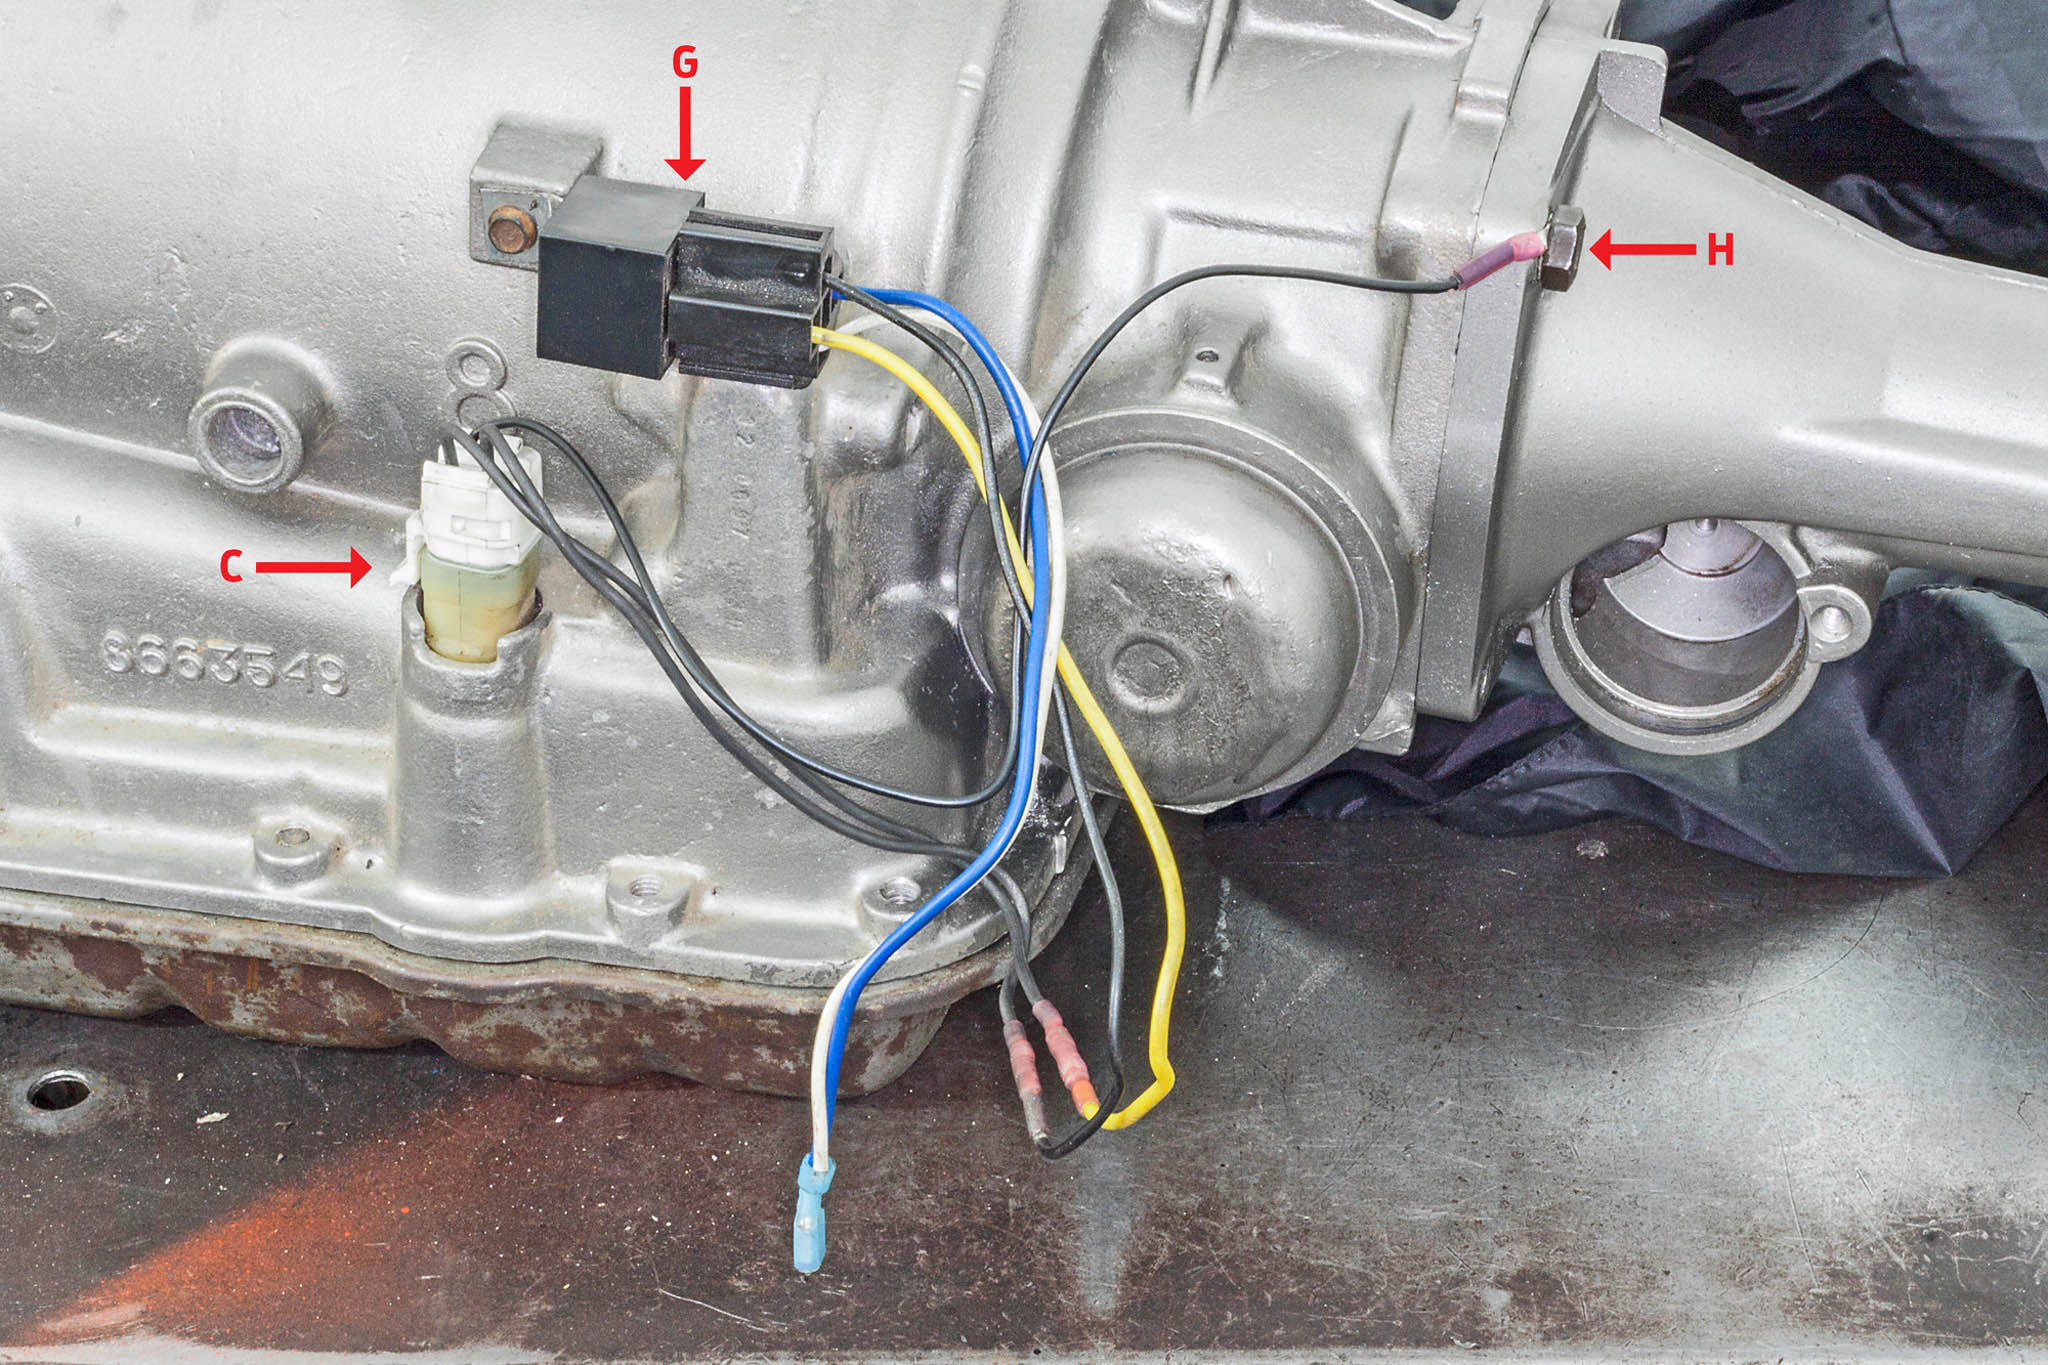 700r4 shift solenoid wiring wiring diagram page 700r4 shift solenoid wiring diagram [ 2048 x 1365 Pixel ]